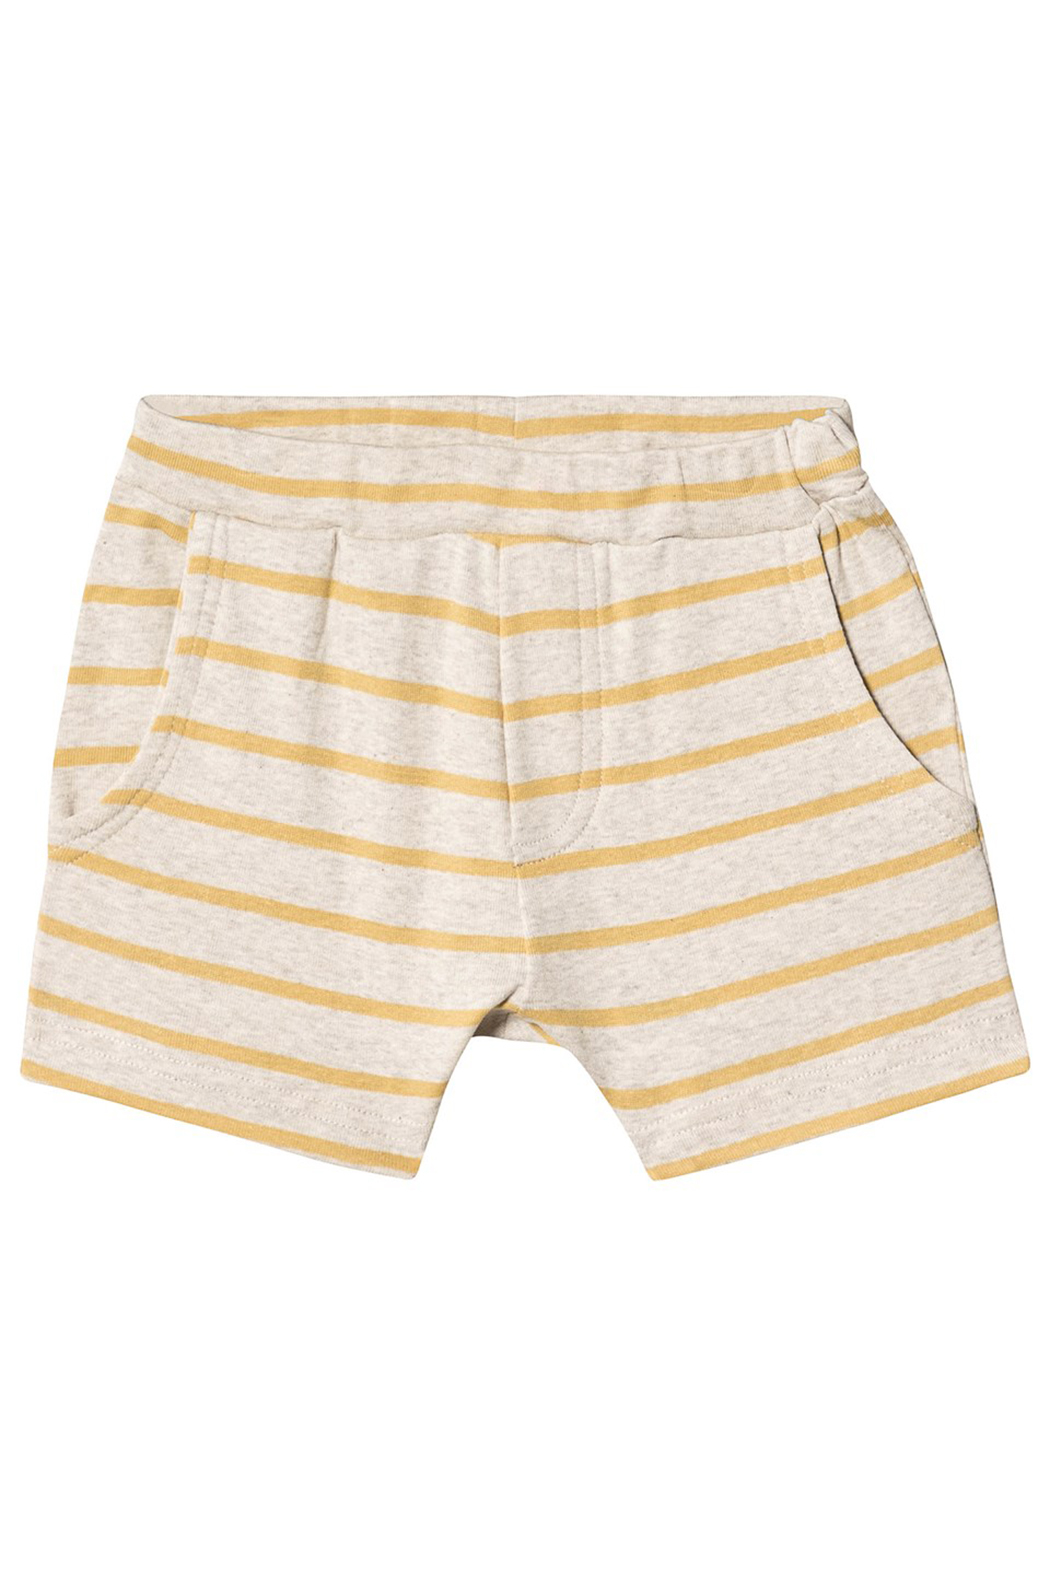 Wheat Aske Shorts - Front Cropped Image